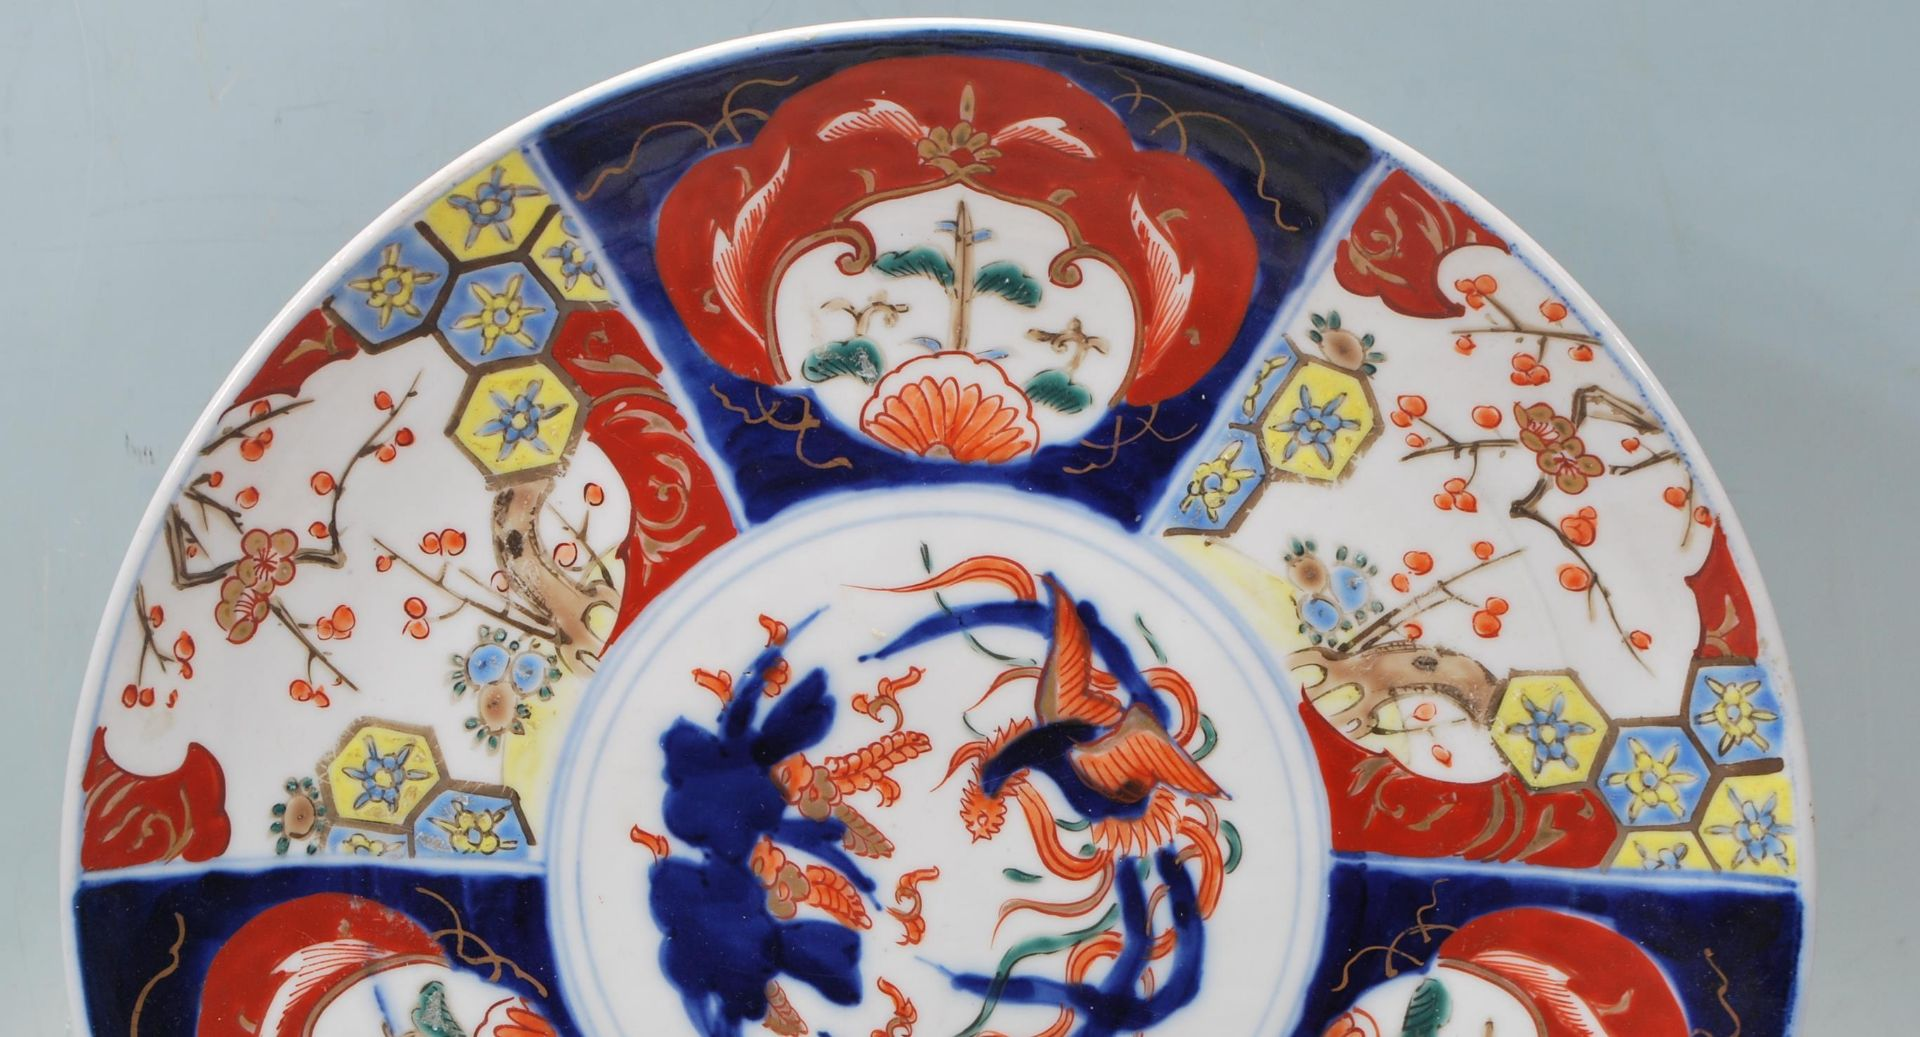 TWO 19TH CETURY 20TH CETURY CHINESE ORIENTAL CHARGERS - Image 2 of 7